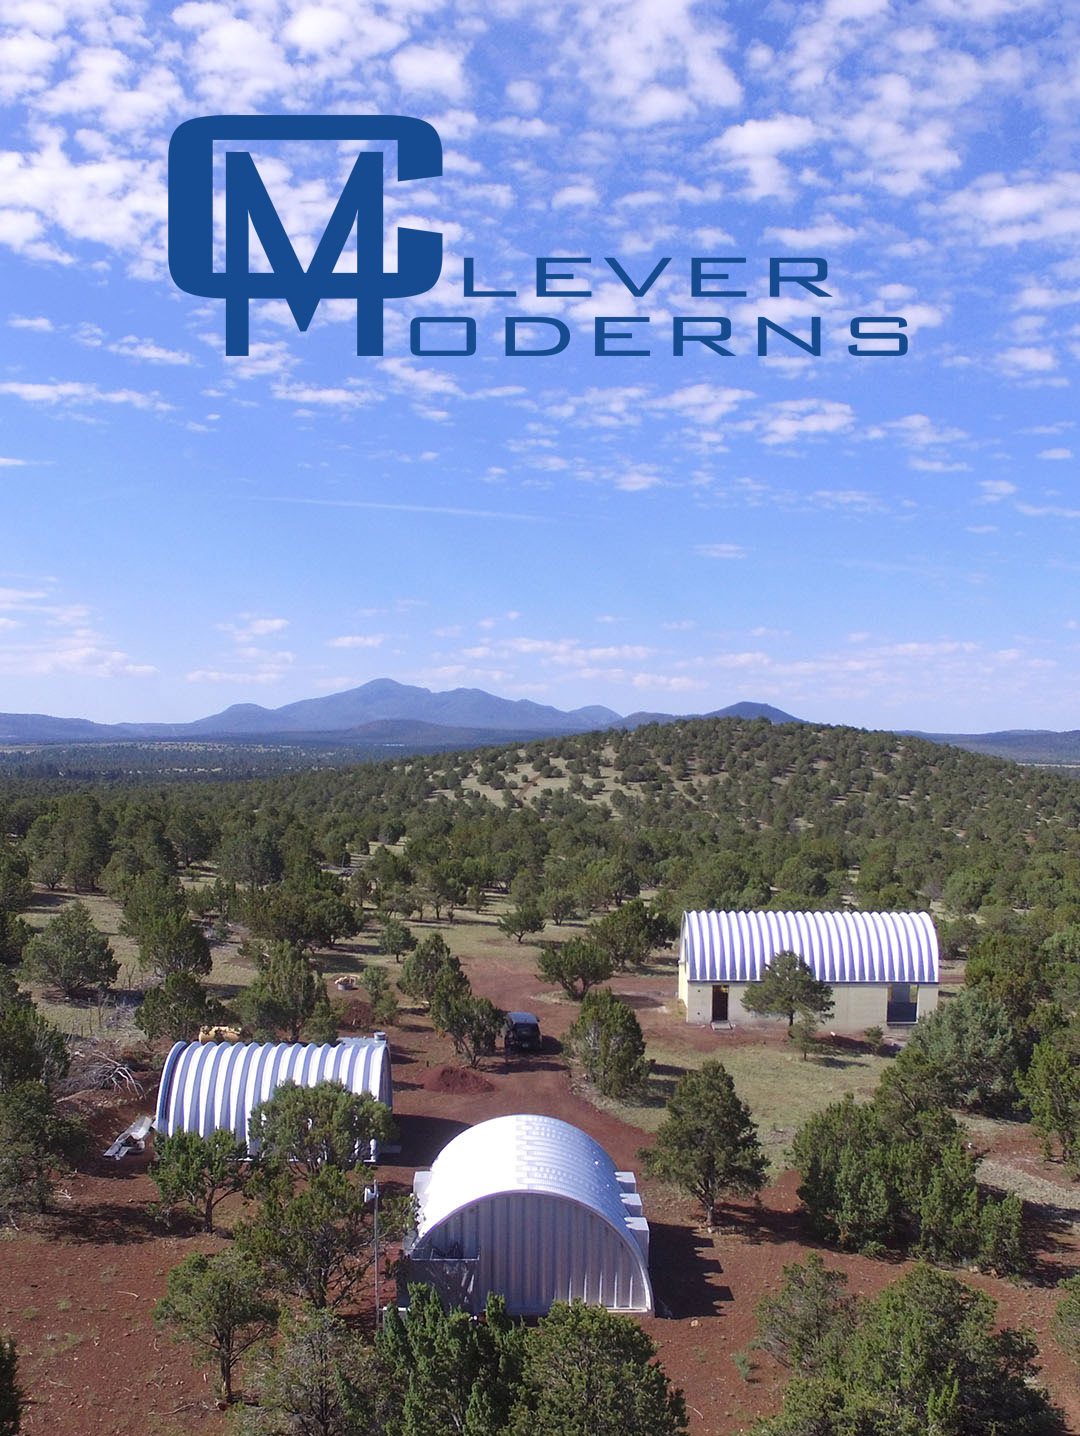 Aerial image of mountain landscape with Quonset huts.